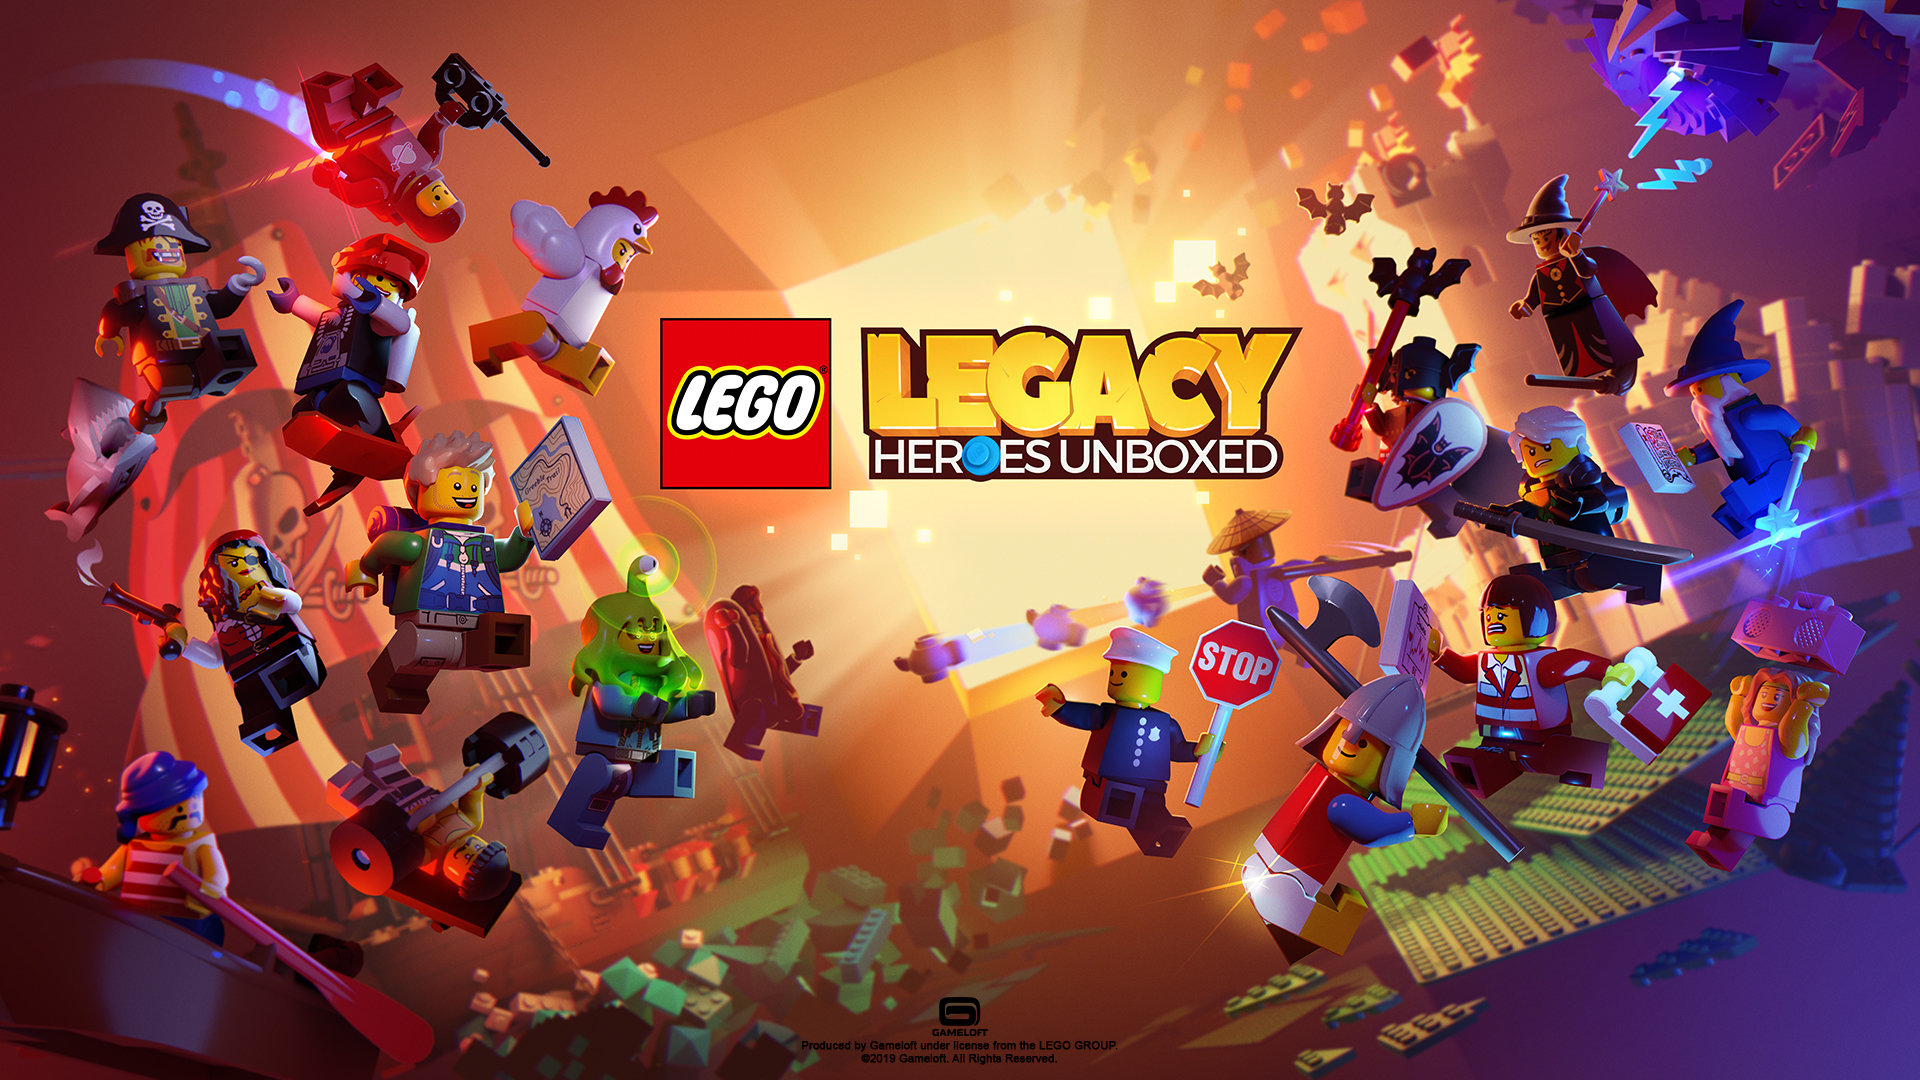 LEGO Legacy pre-registration begins today